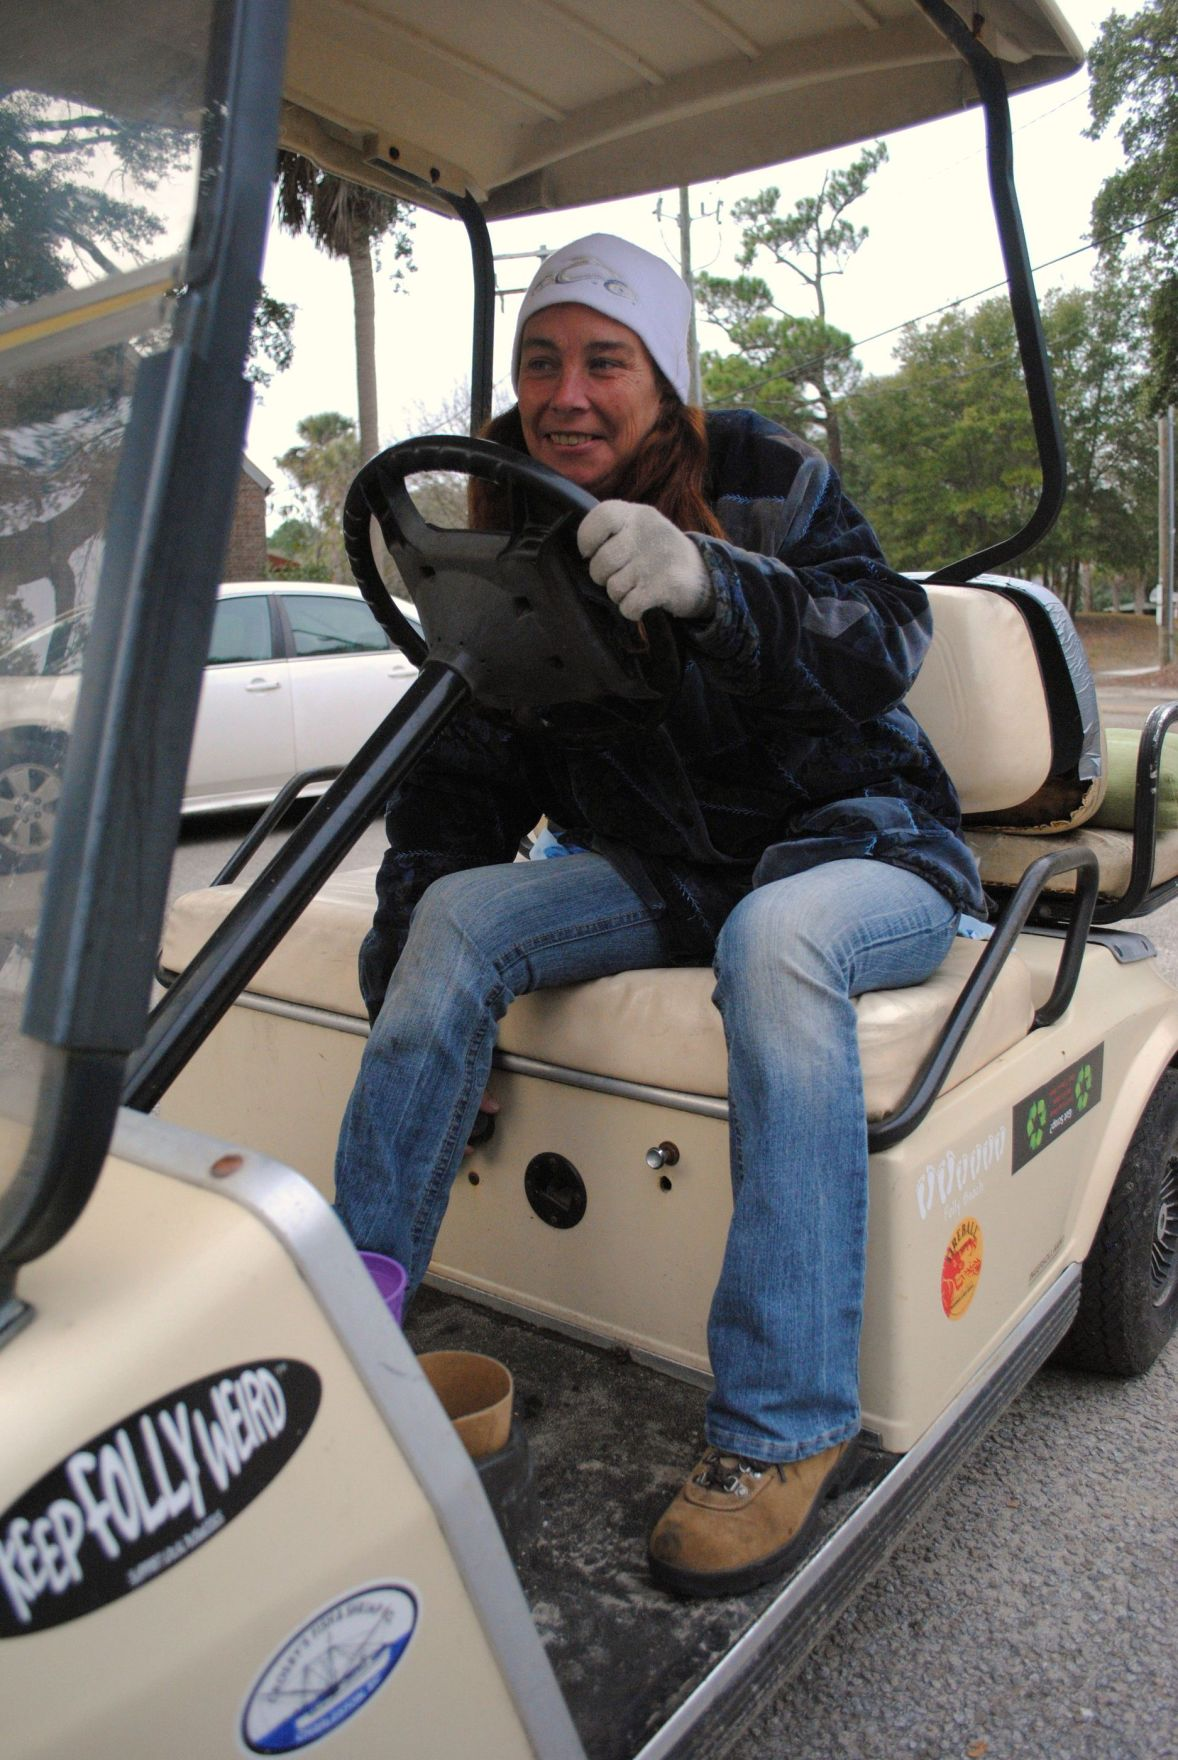 Golf carts better than cars for island life, residents say